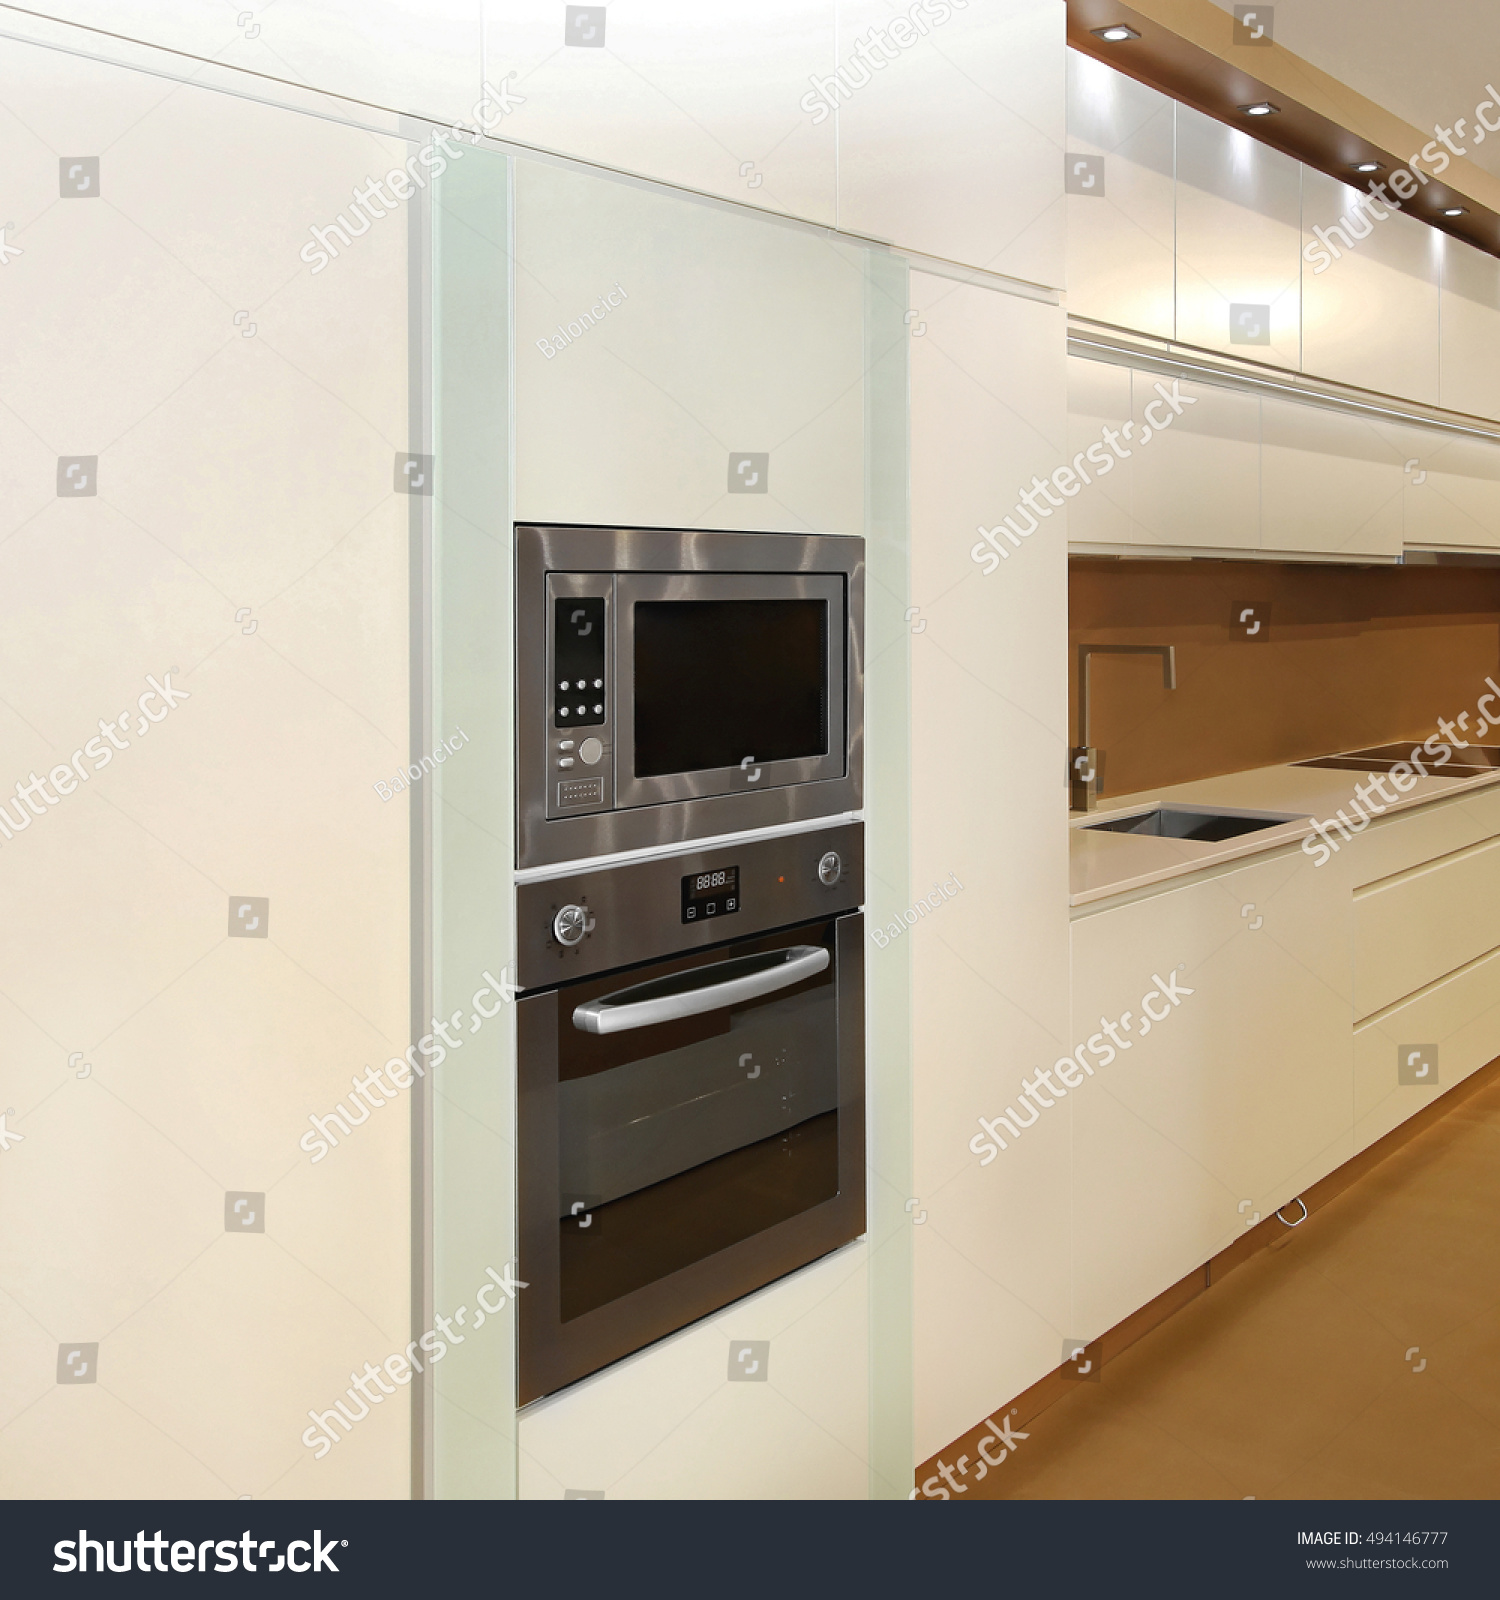 https www shutterstock com image photo microwave convection oven built new cabinet 494146777